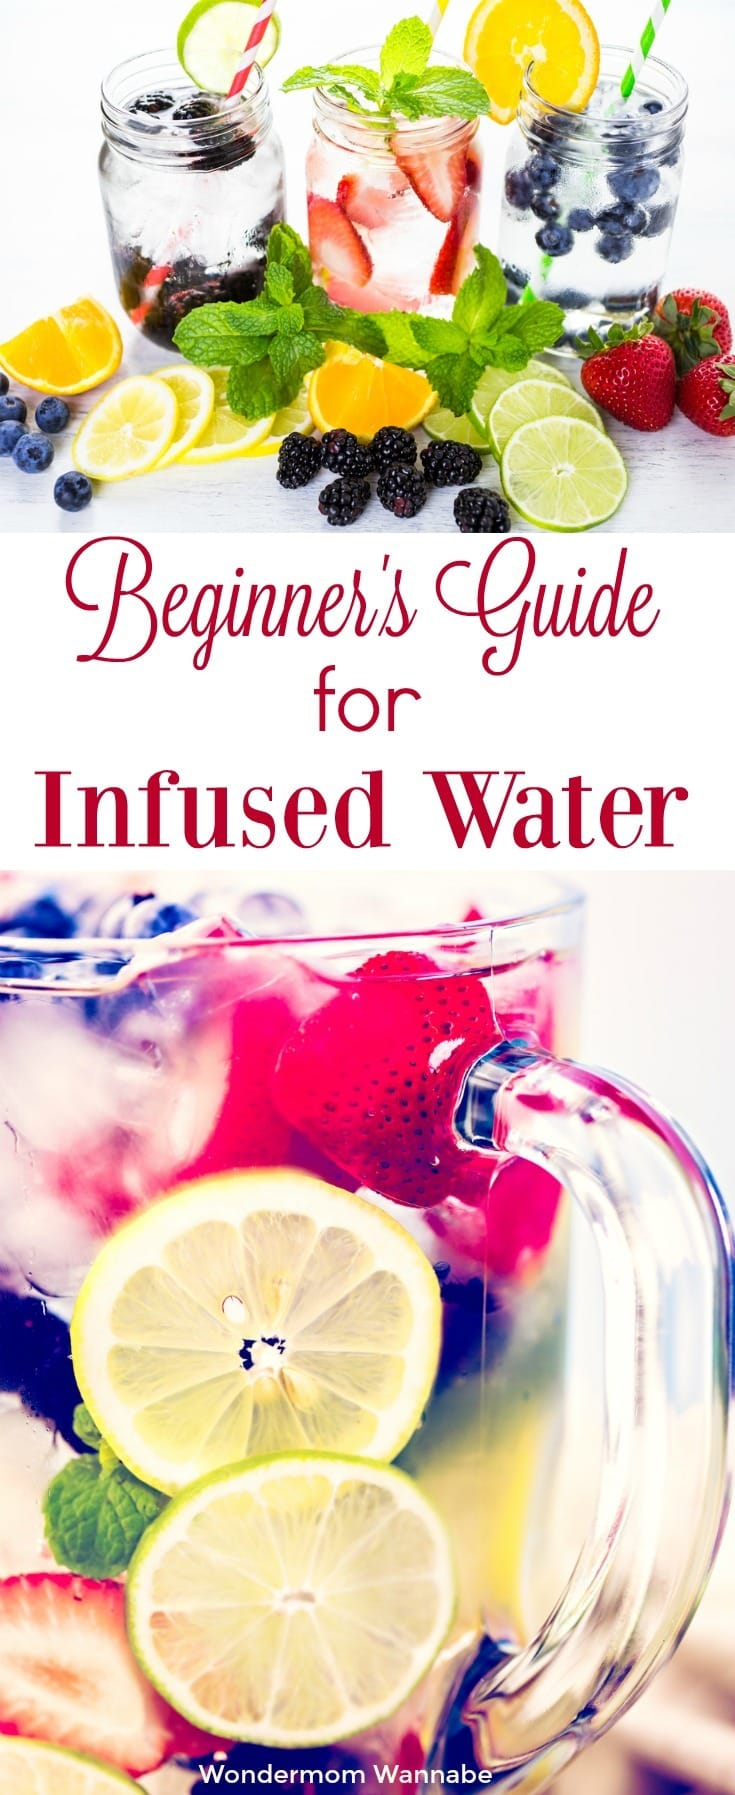 I knew infused water had to be easy to make but was still afraid to try it. This beginner's guide is perfect for anyone who wants to start making infused water and doesn't know where to start.